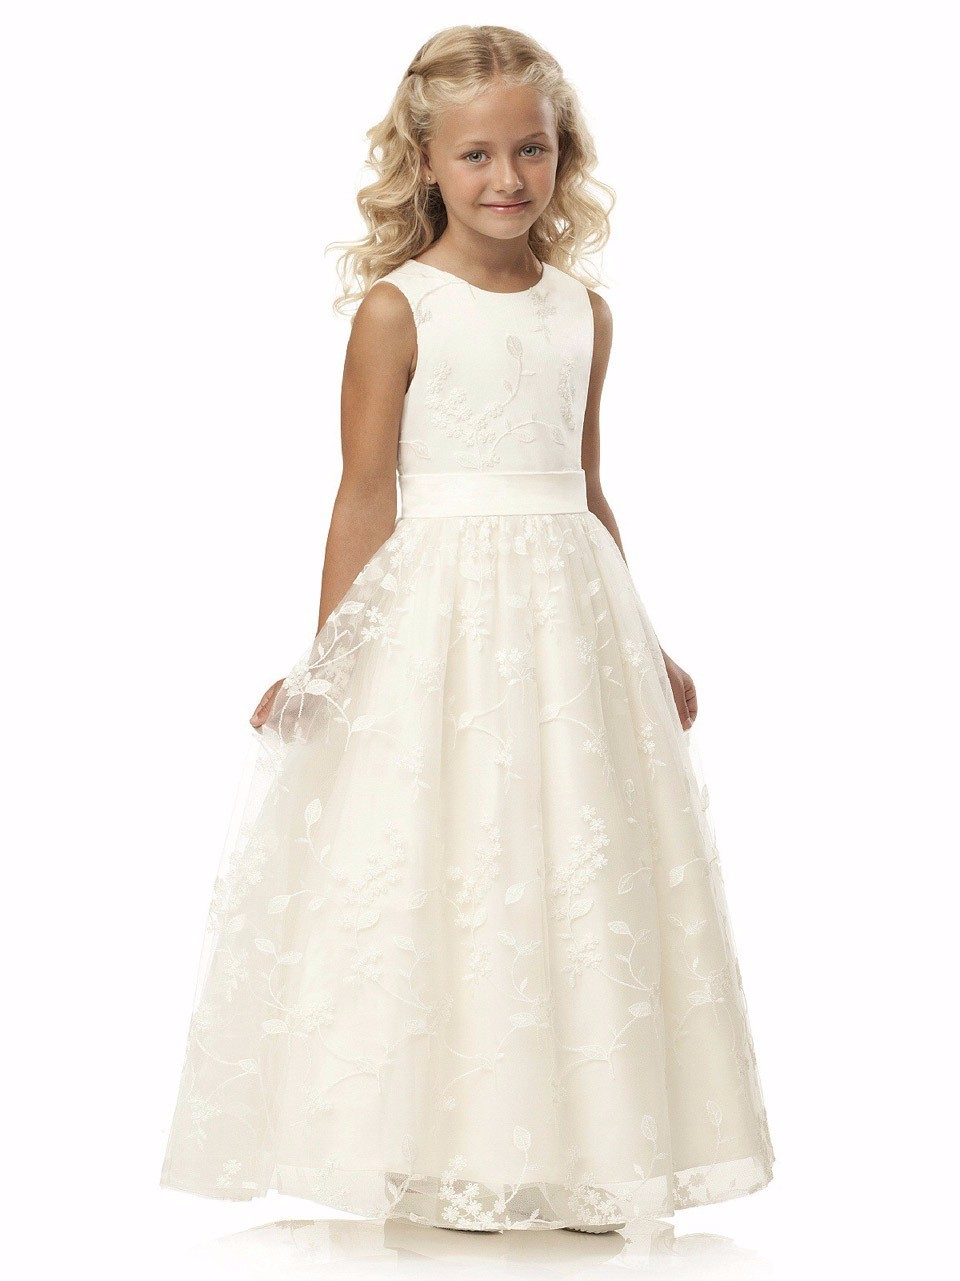 A-Line Flower Girls Dresses For Wedding Gowns Staight Party Dress Kids Beauty Pageant Dresses Lace Mother Daughter Dresses